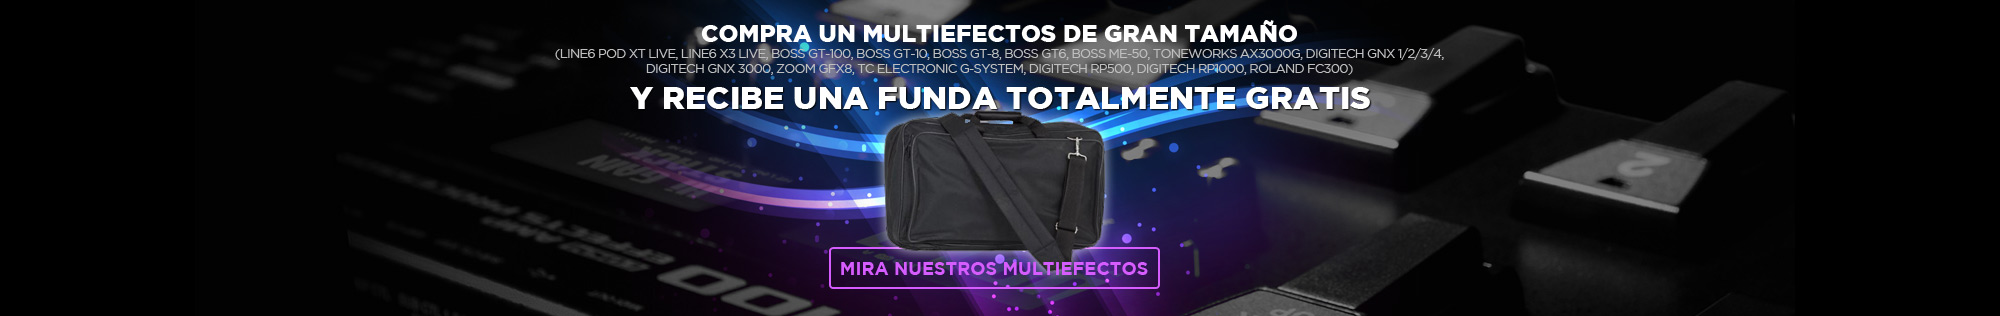 Regalo funda Multiefectos